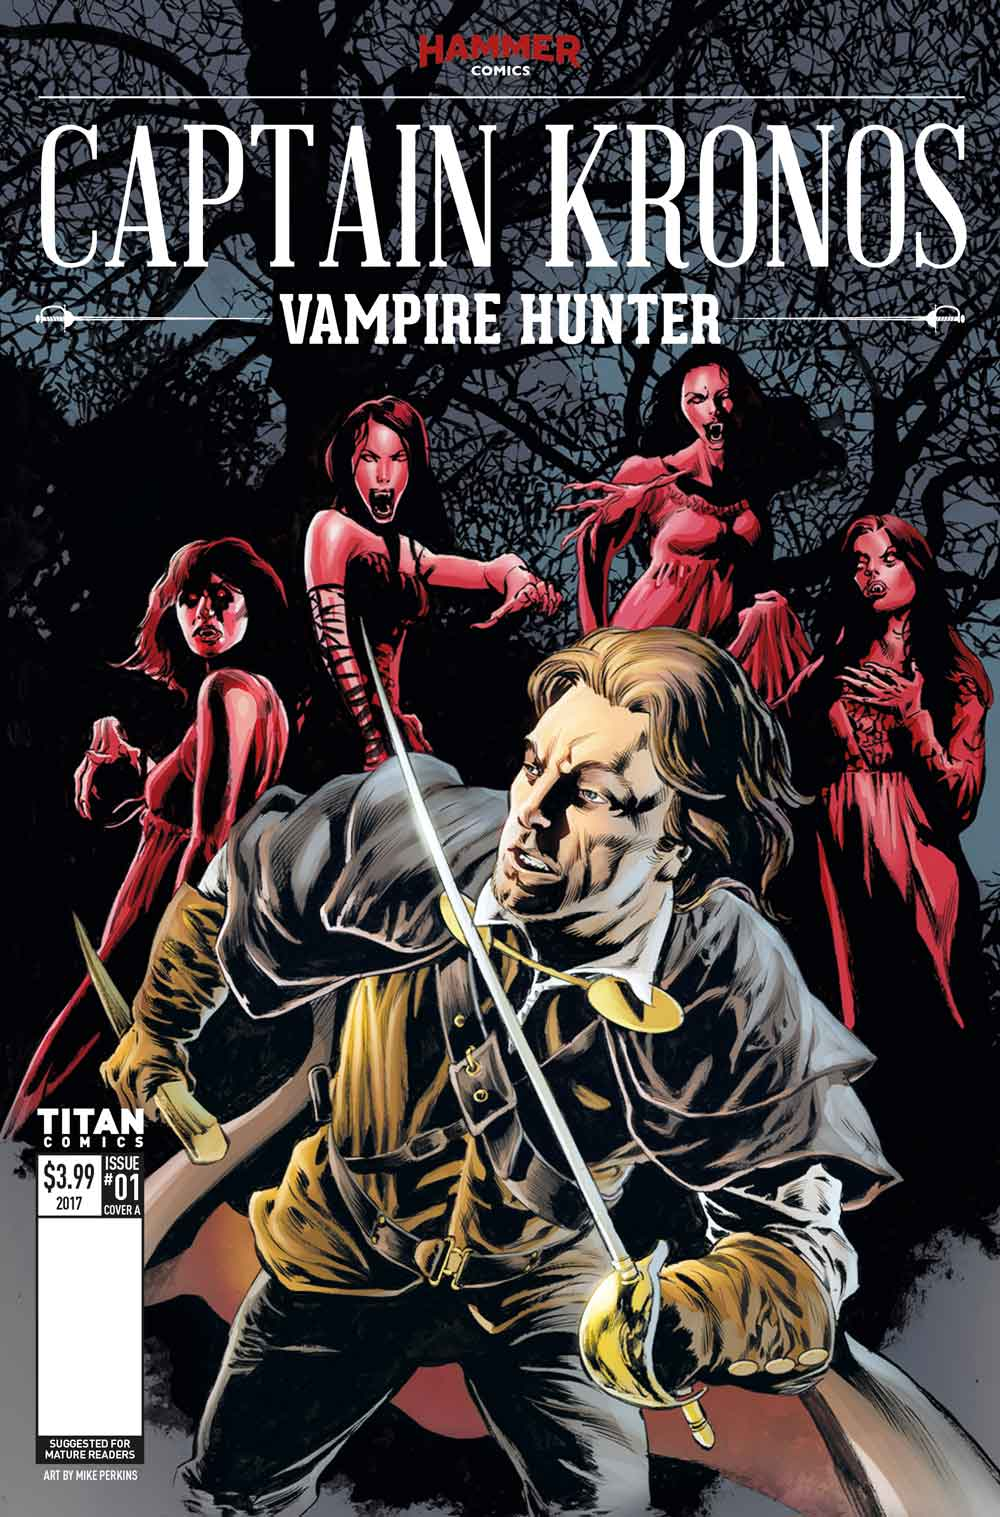 CapKronos Cover A Mike Perkins - Exclusive Reveal of Color Pages from Hammer Horror's Captain Kronos: Vampire Hunter